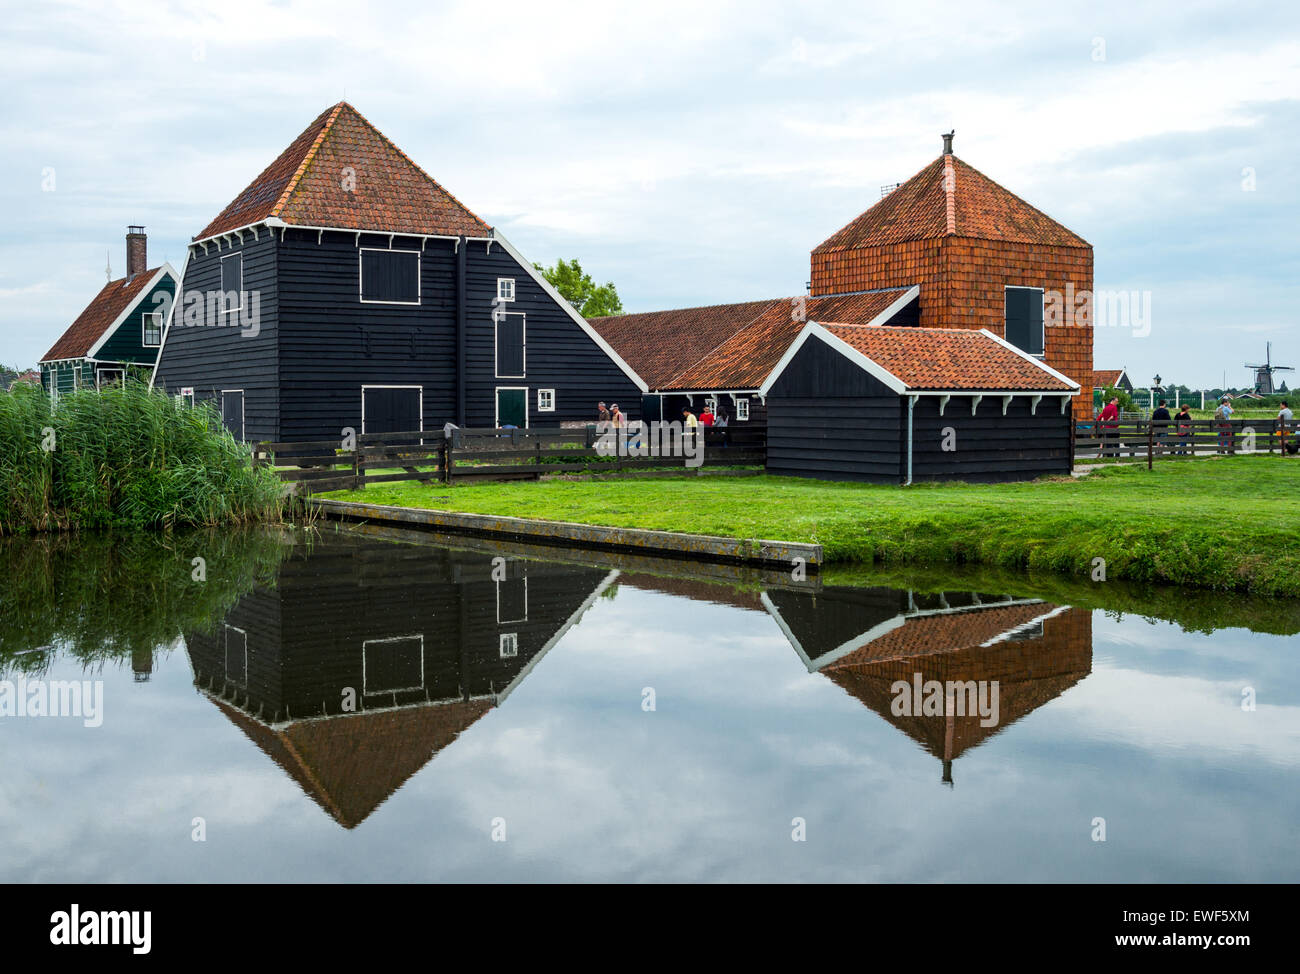 Amsterdam, Waterland district, Zaandam, typical country houses - Stock Image